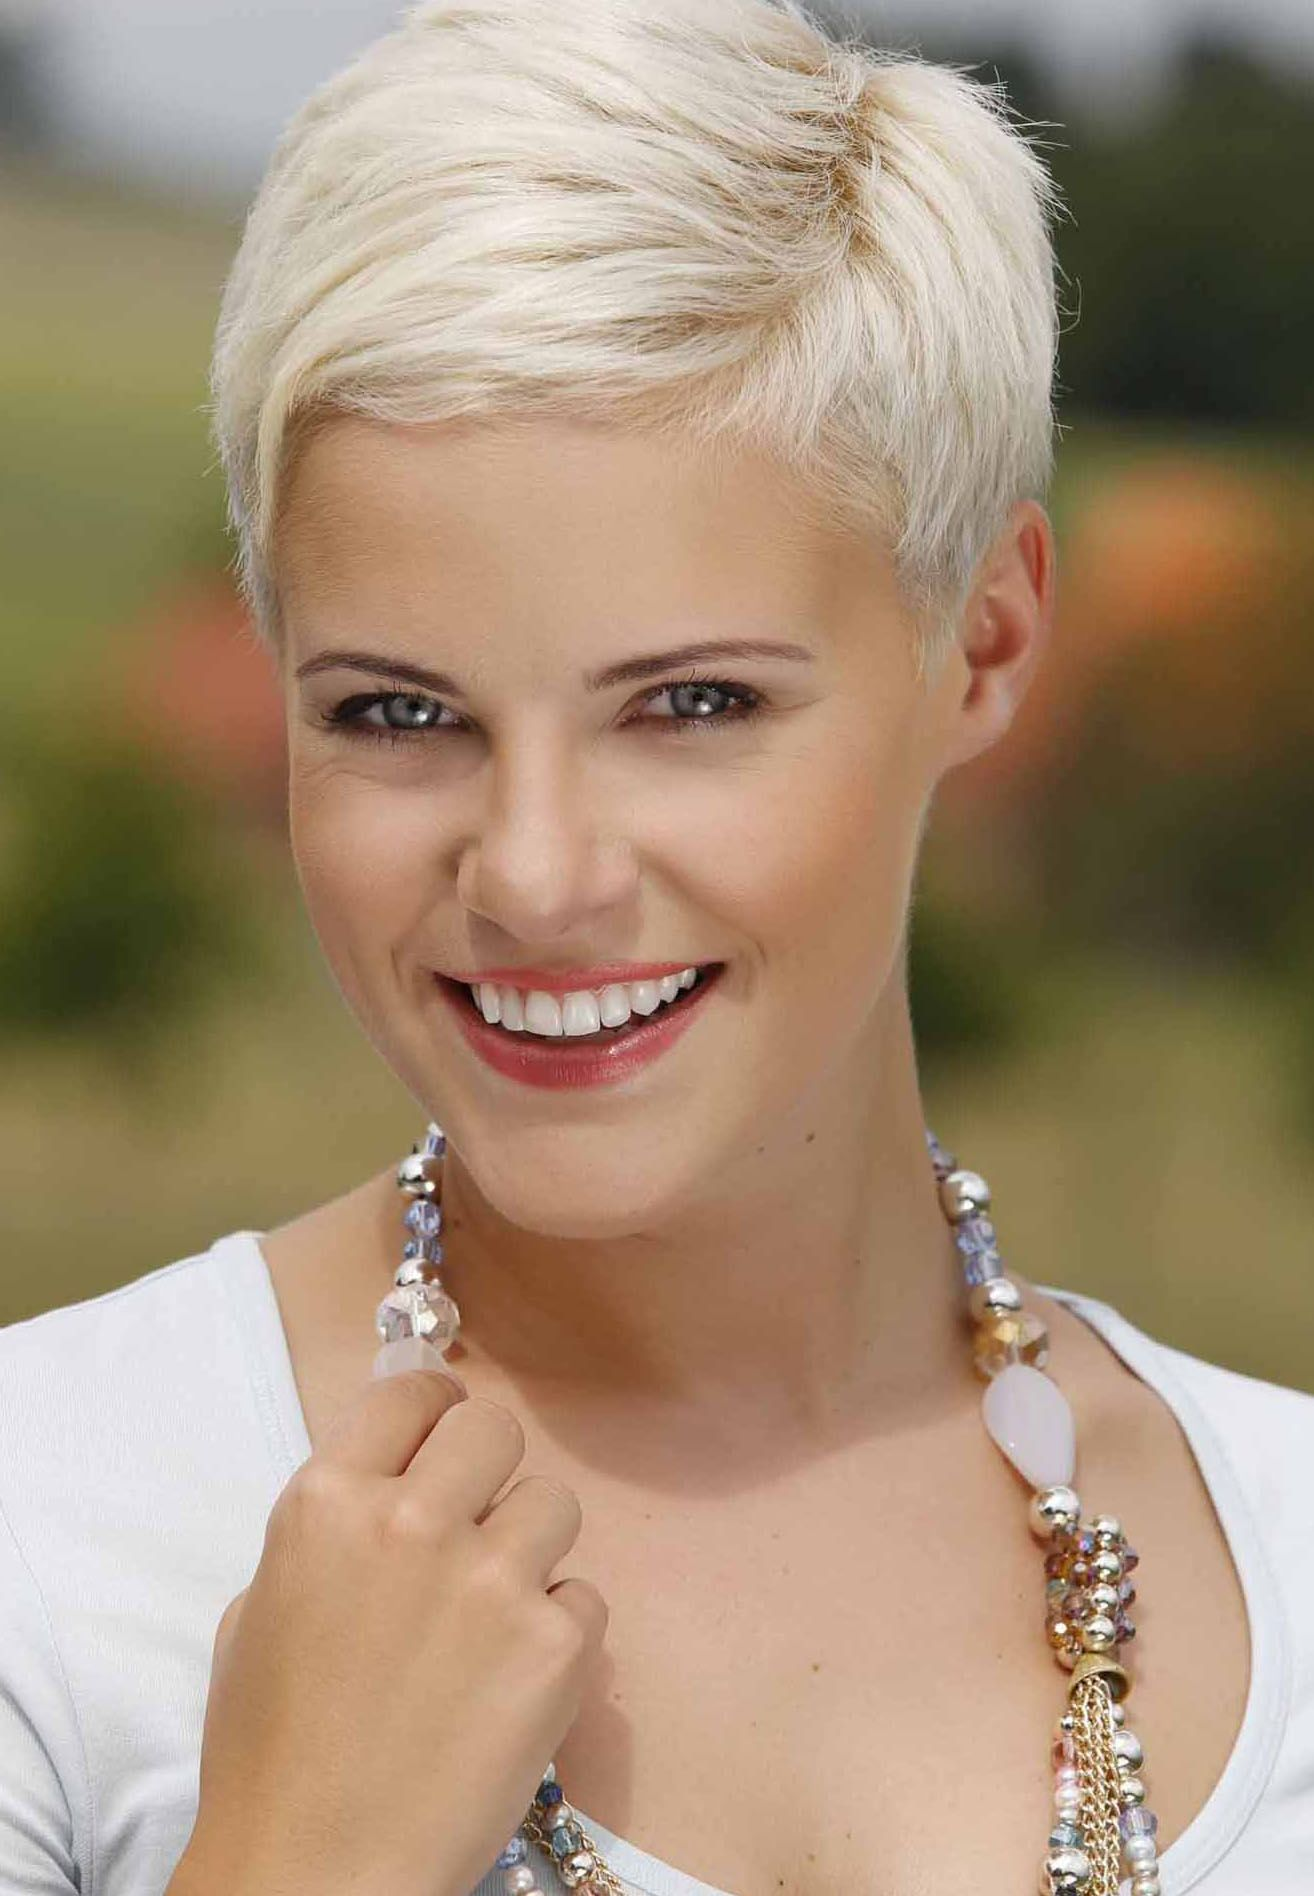 Awesome 1000 Images About Short Blonde Hair On Pinterest Super Short Short Hairstyles Gunalazisus